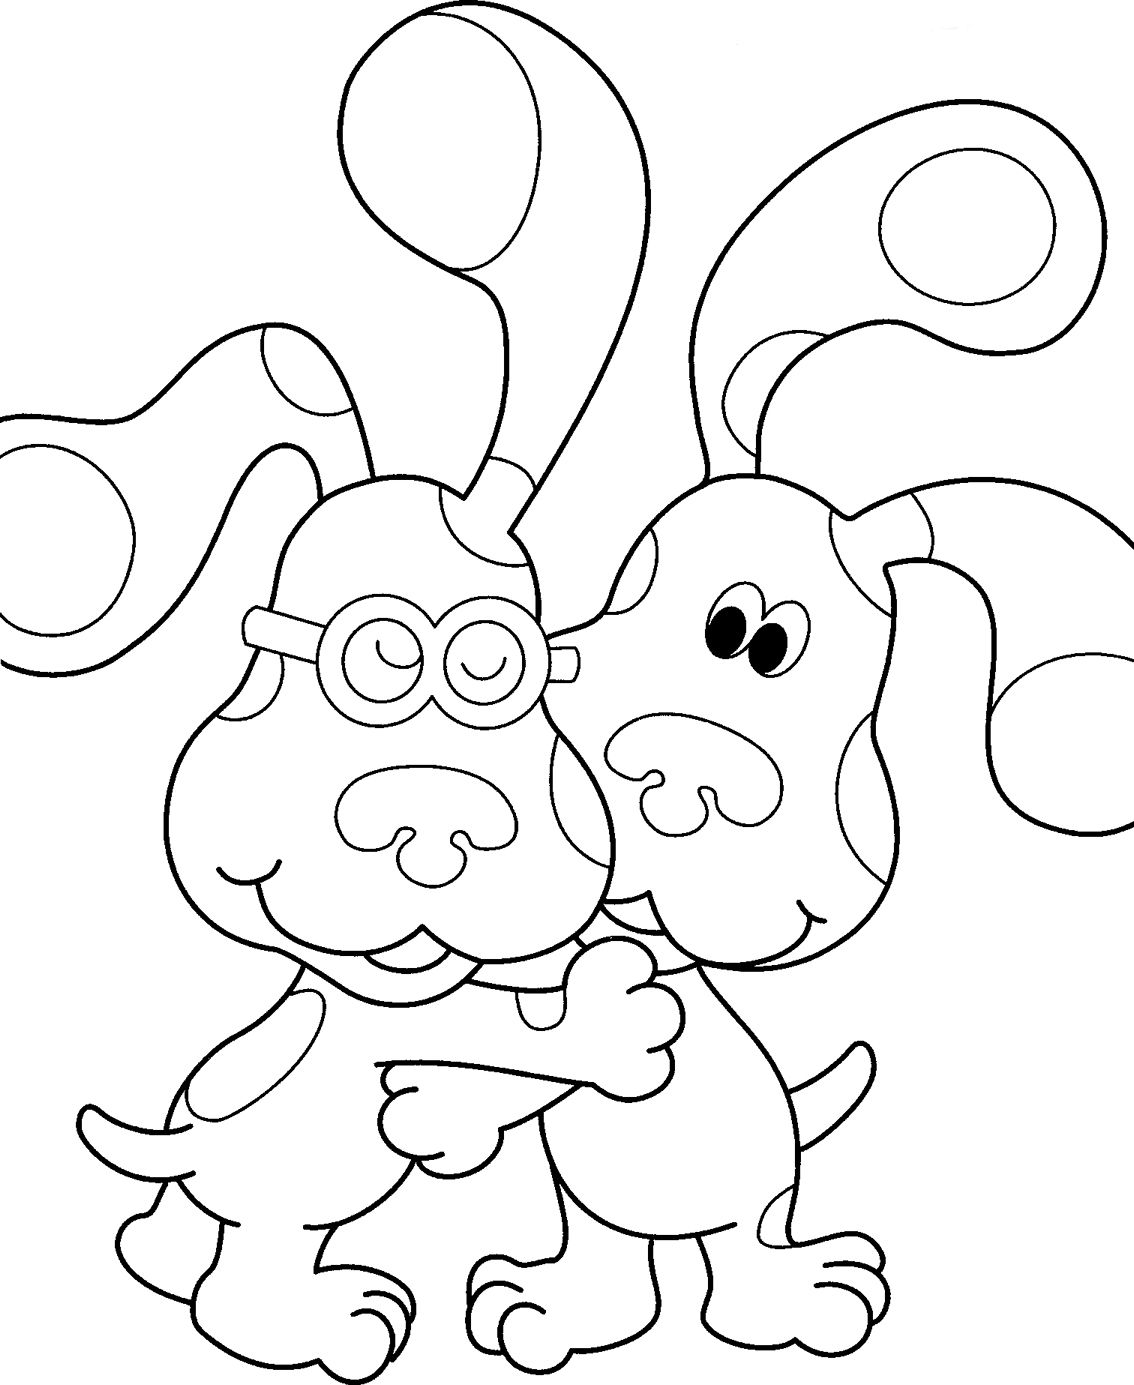 http://colorings.co/blues-clues-coloring/ | Colorings | Pinterest ...